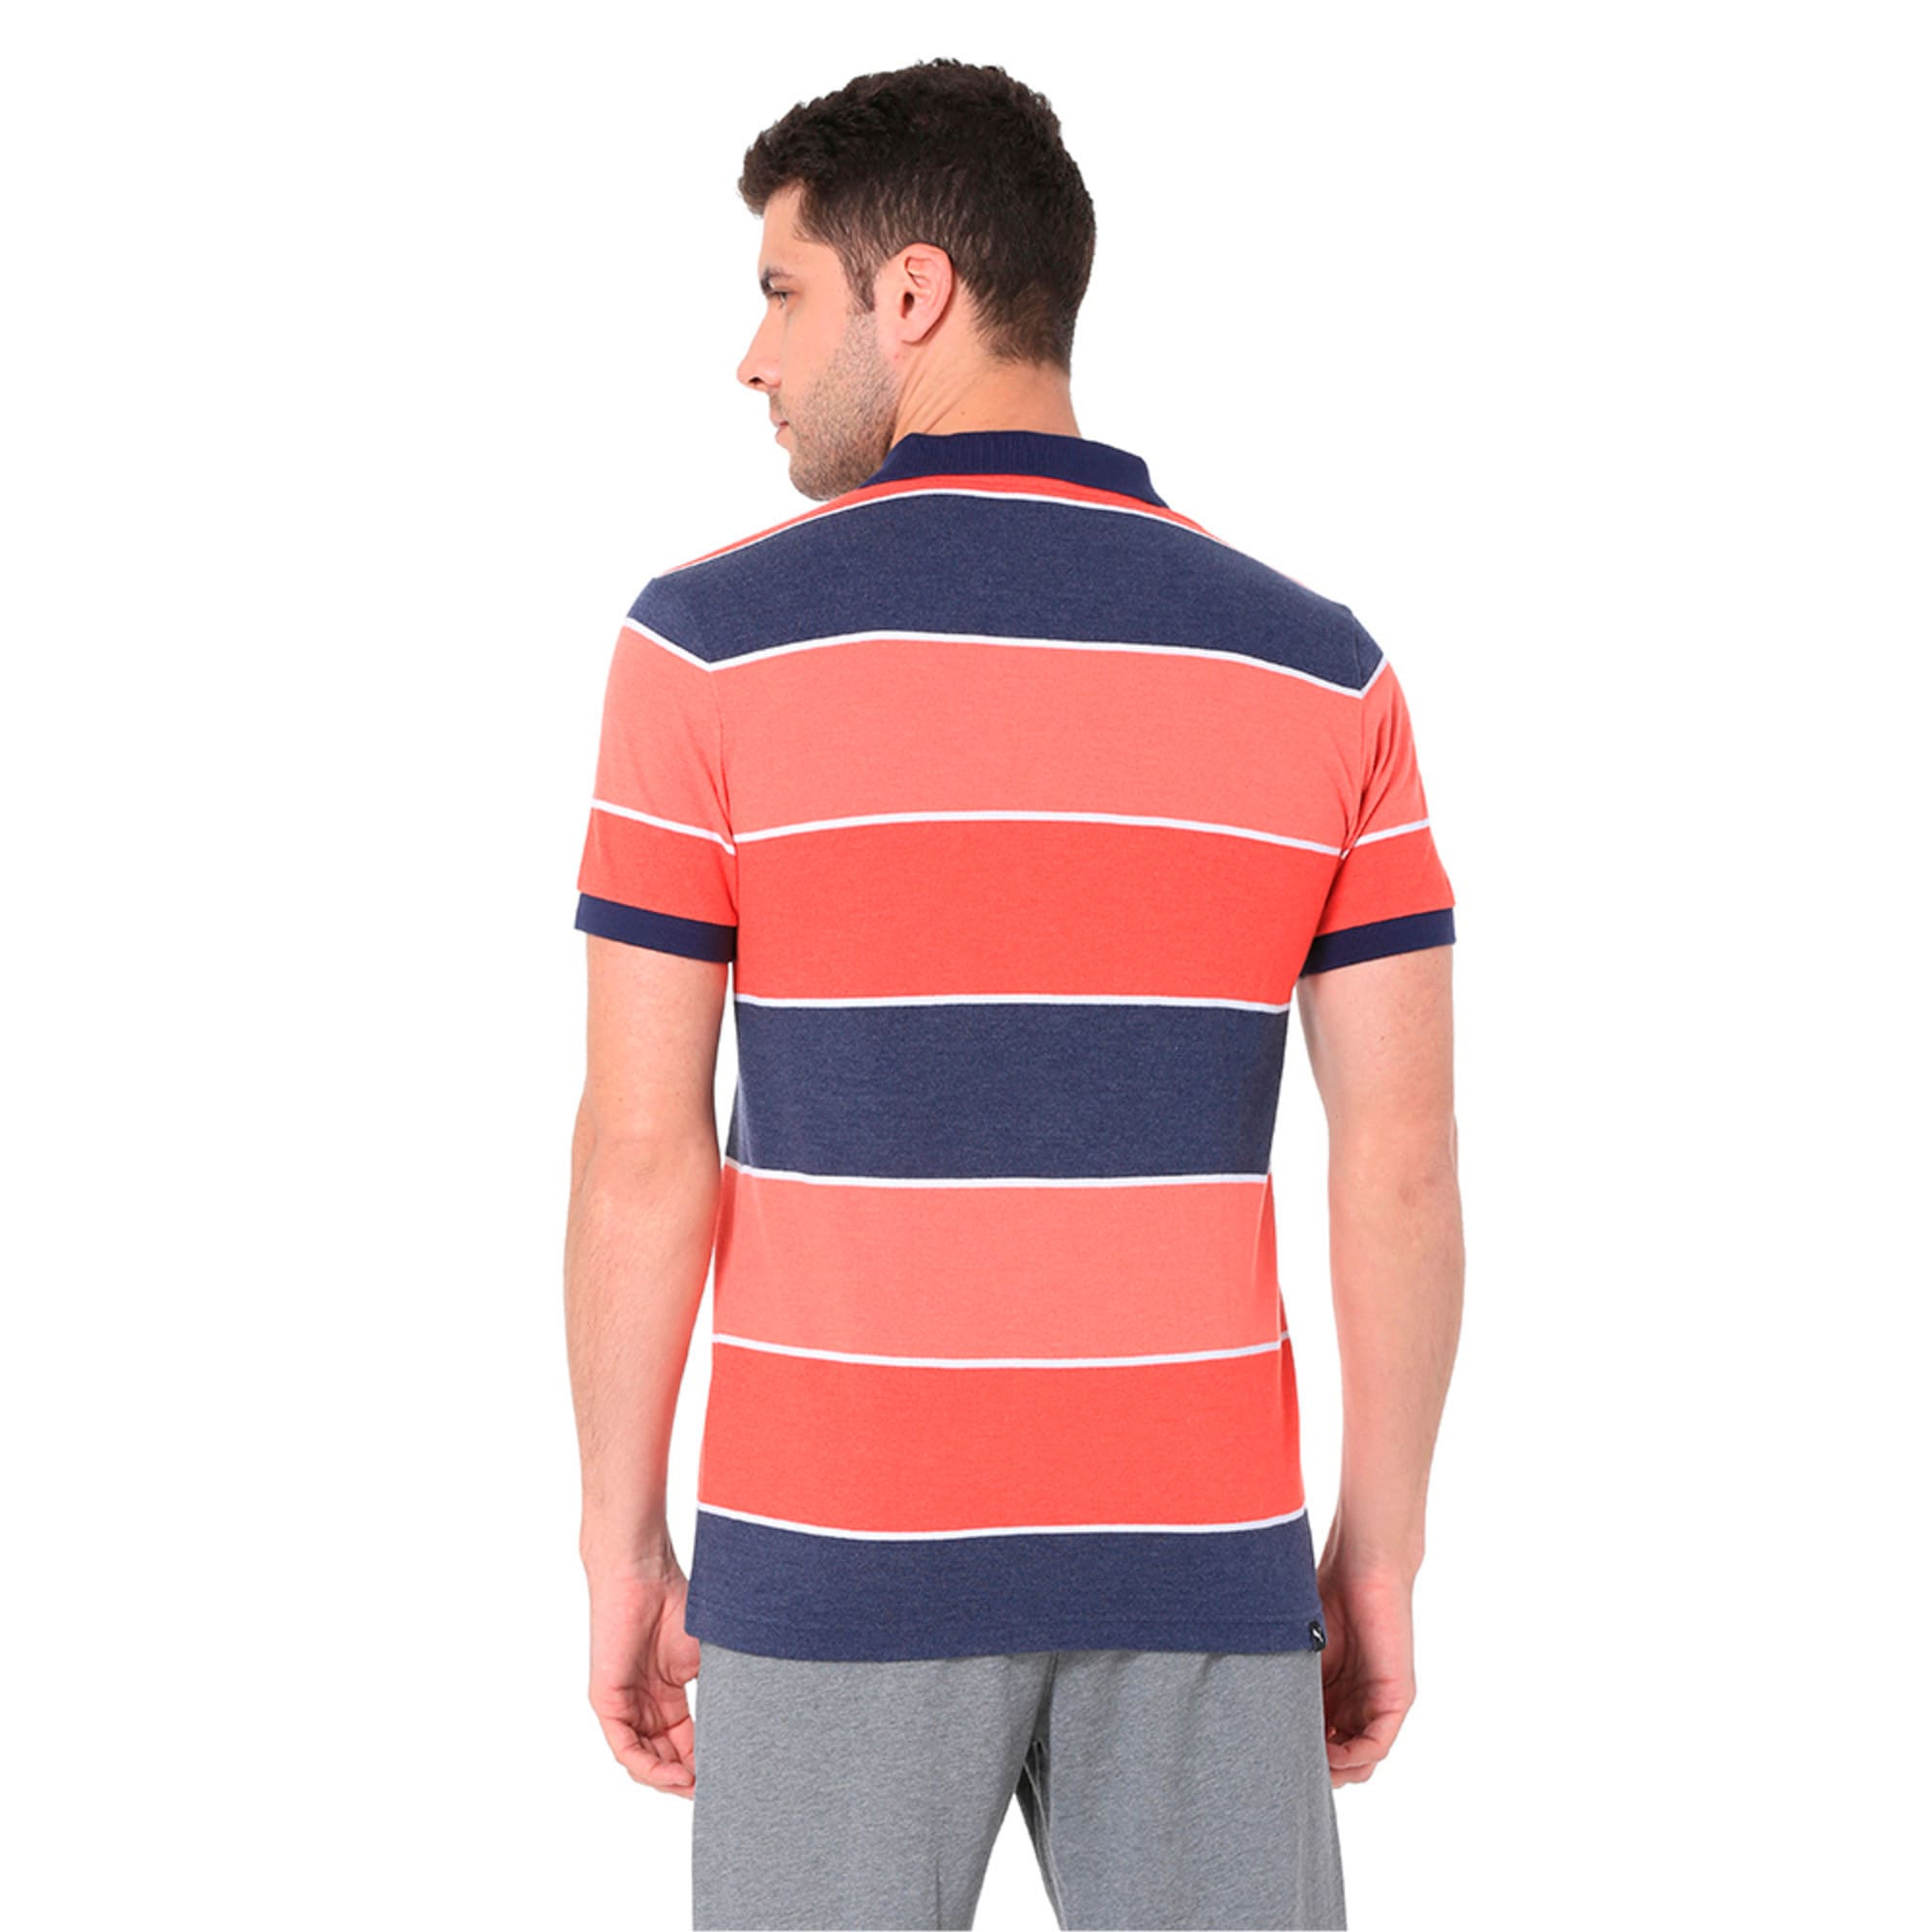 Thumbnail 8 of COLOR BLOCKED POLO M, Flame Scarlet Heather, medium-IND